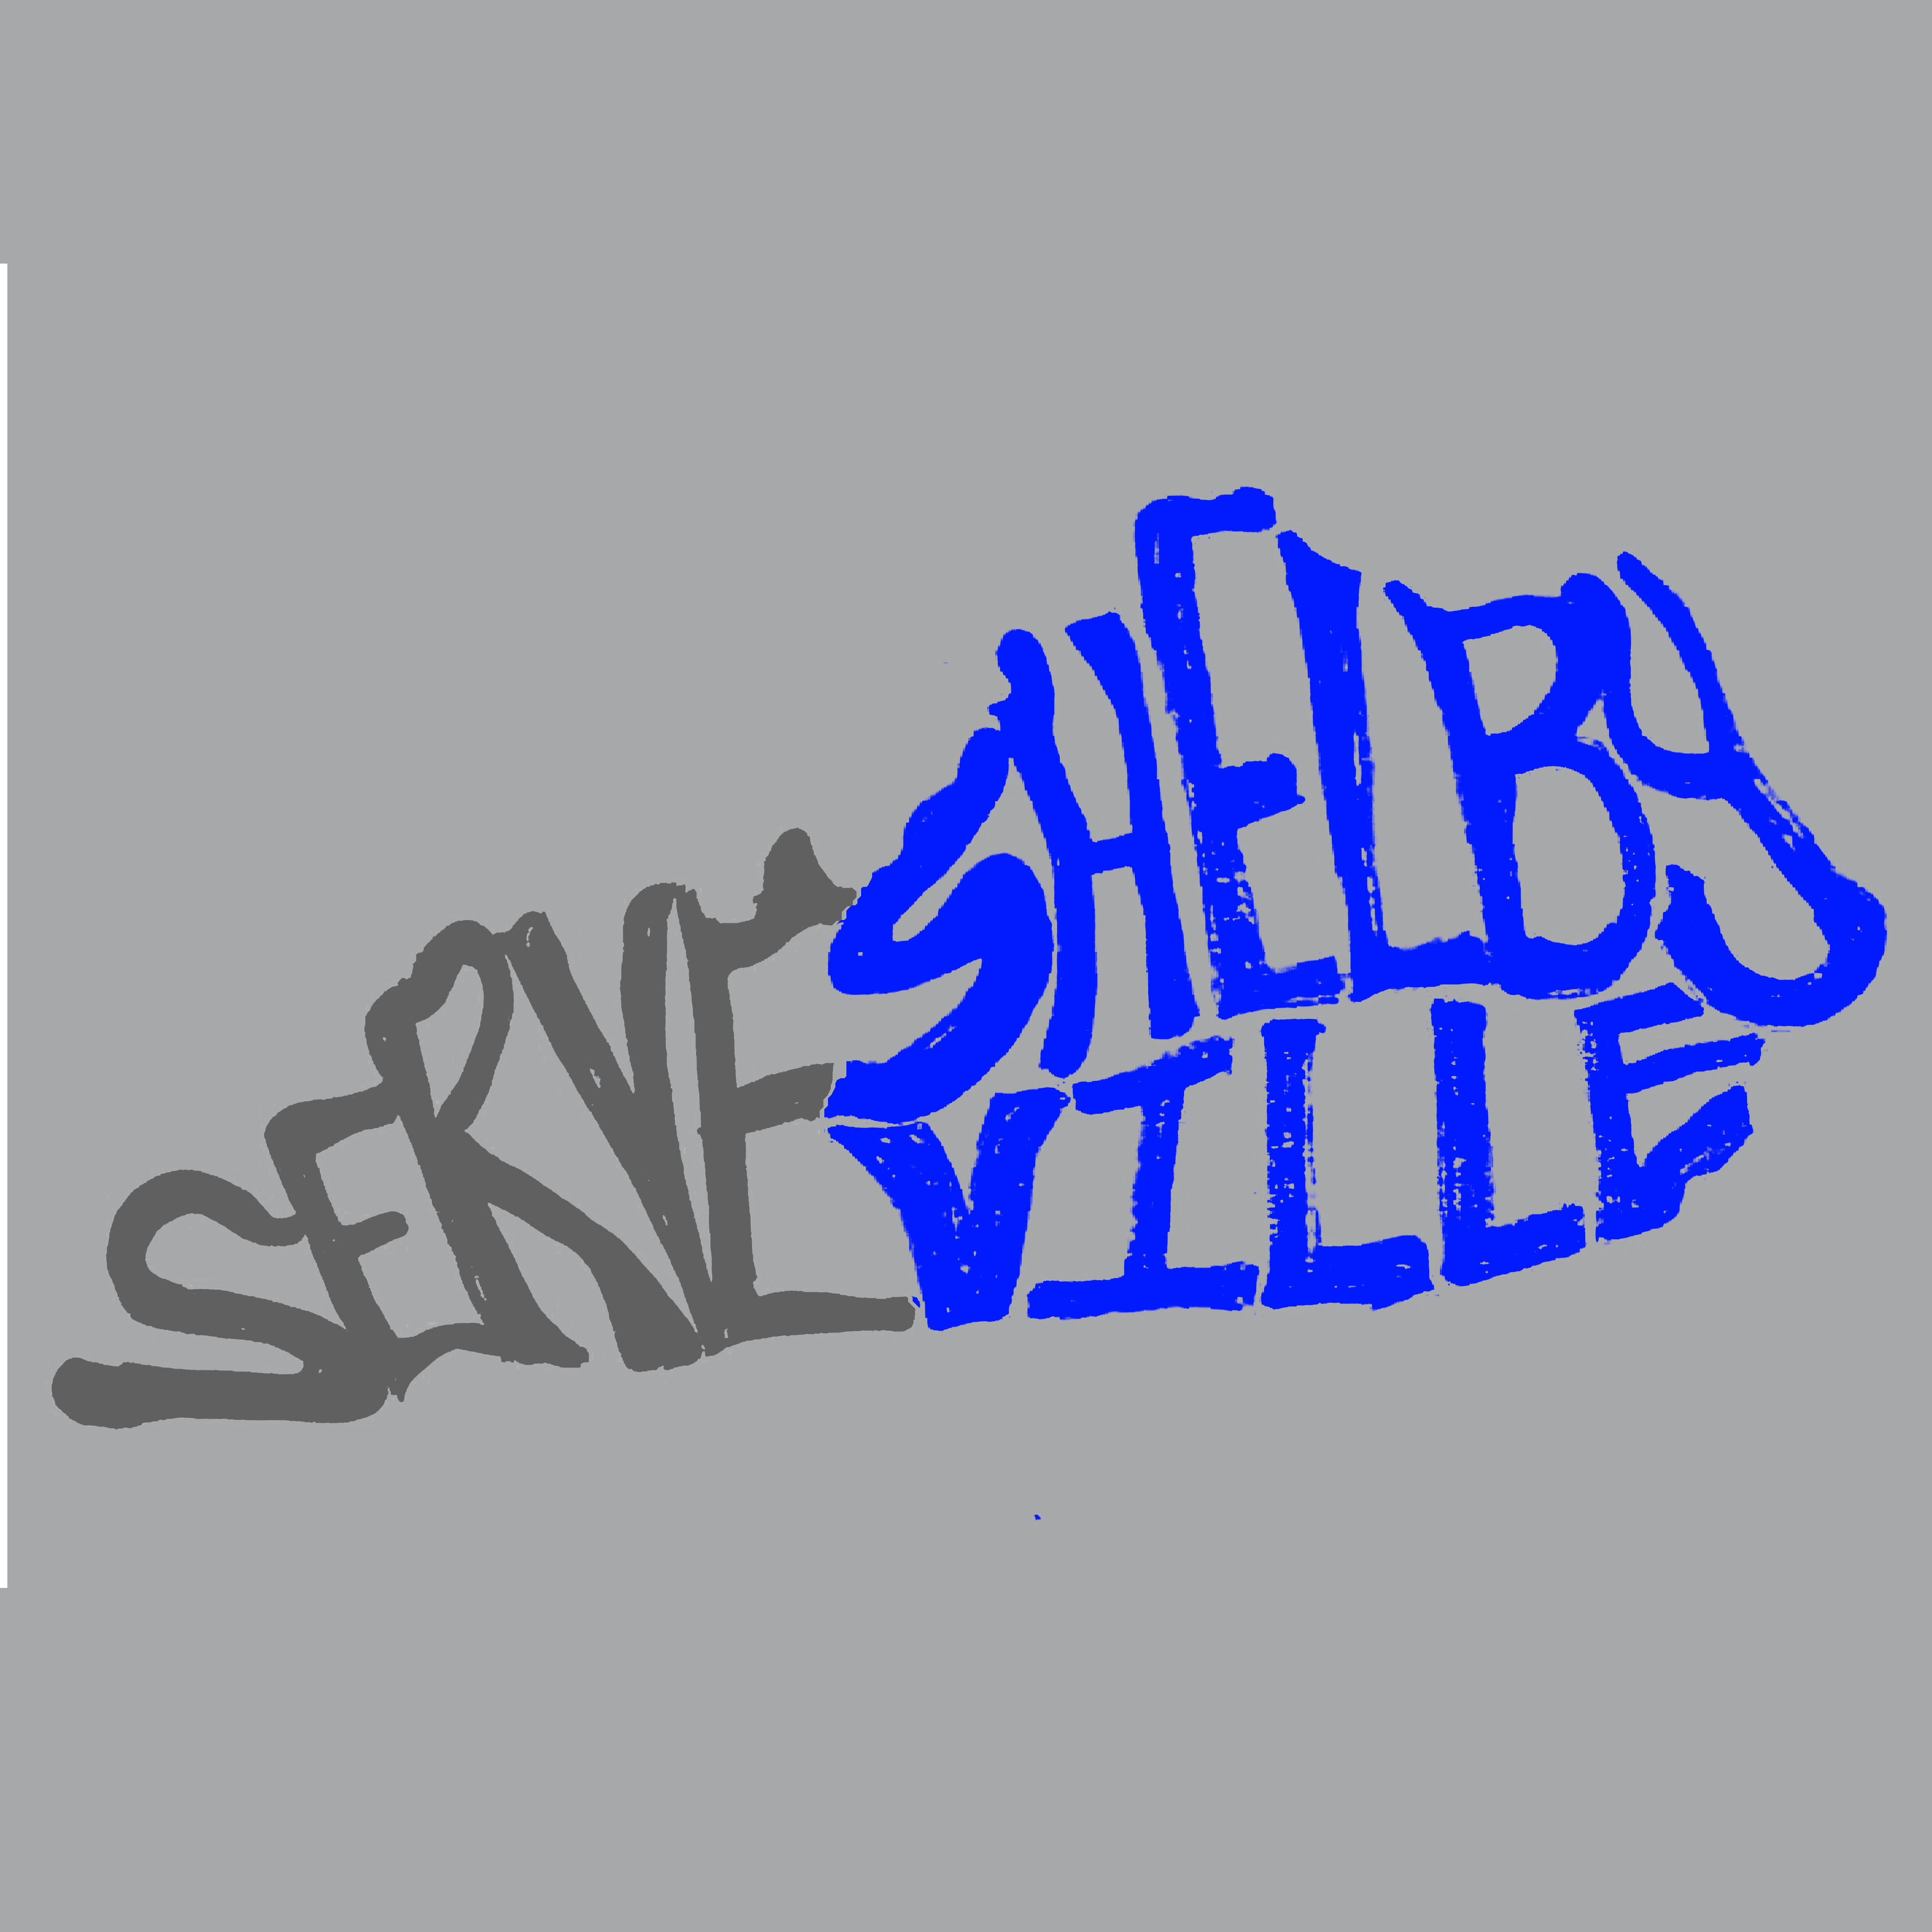 Shelbyville shirt 1